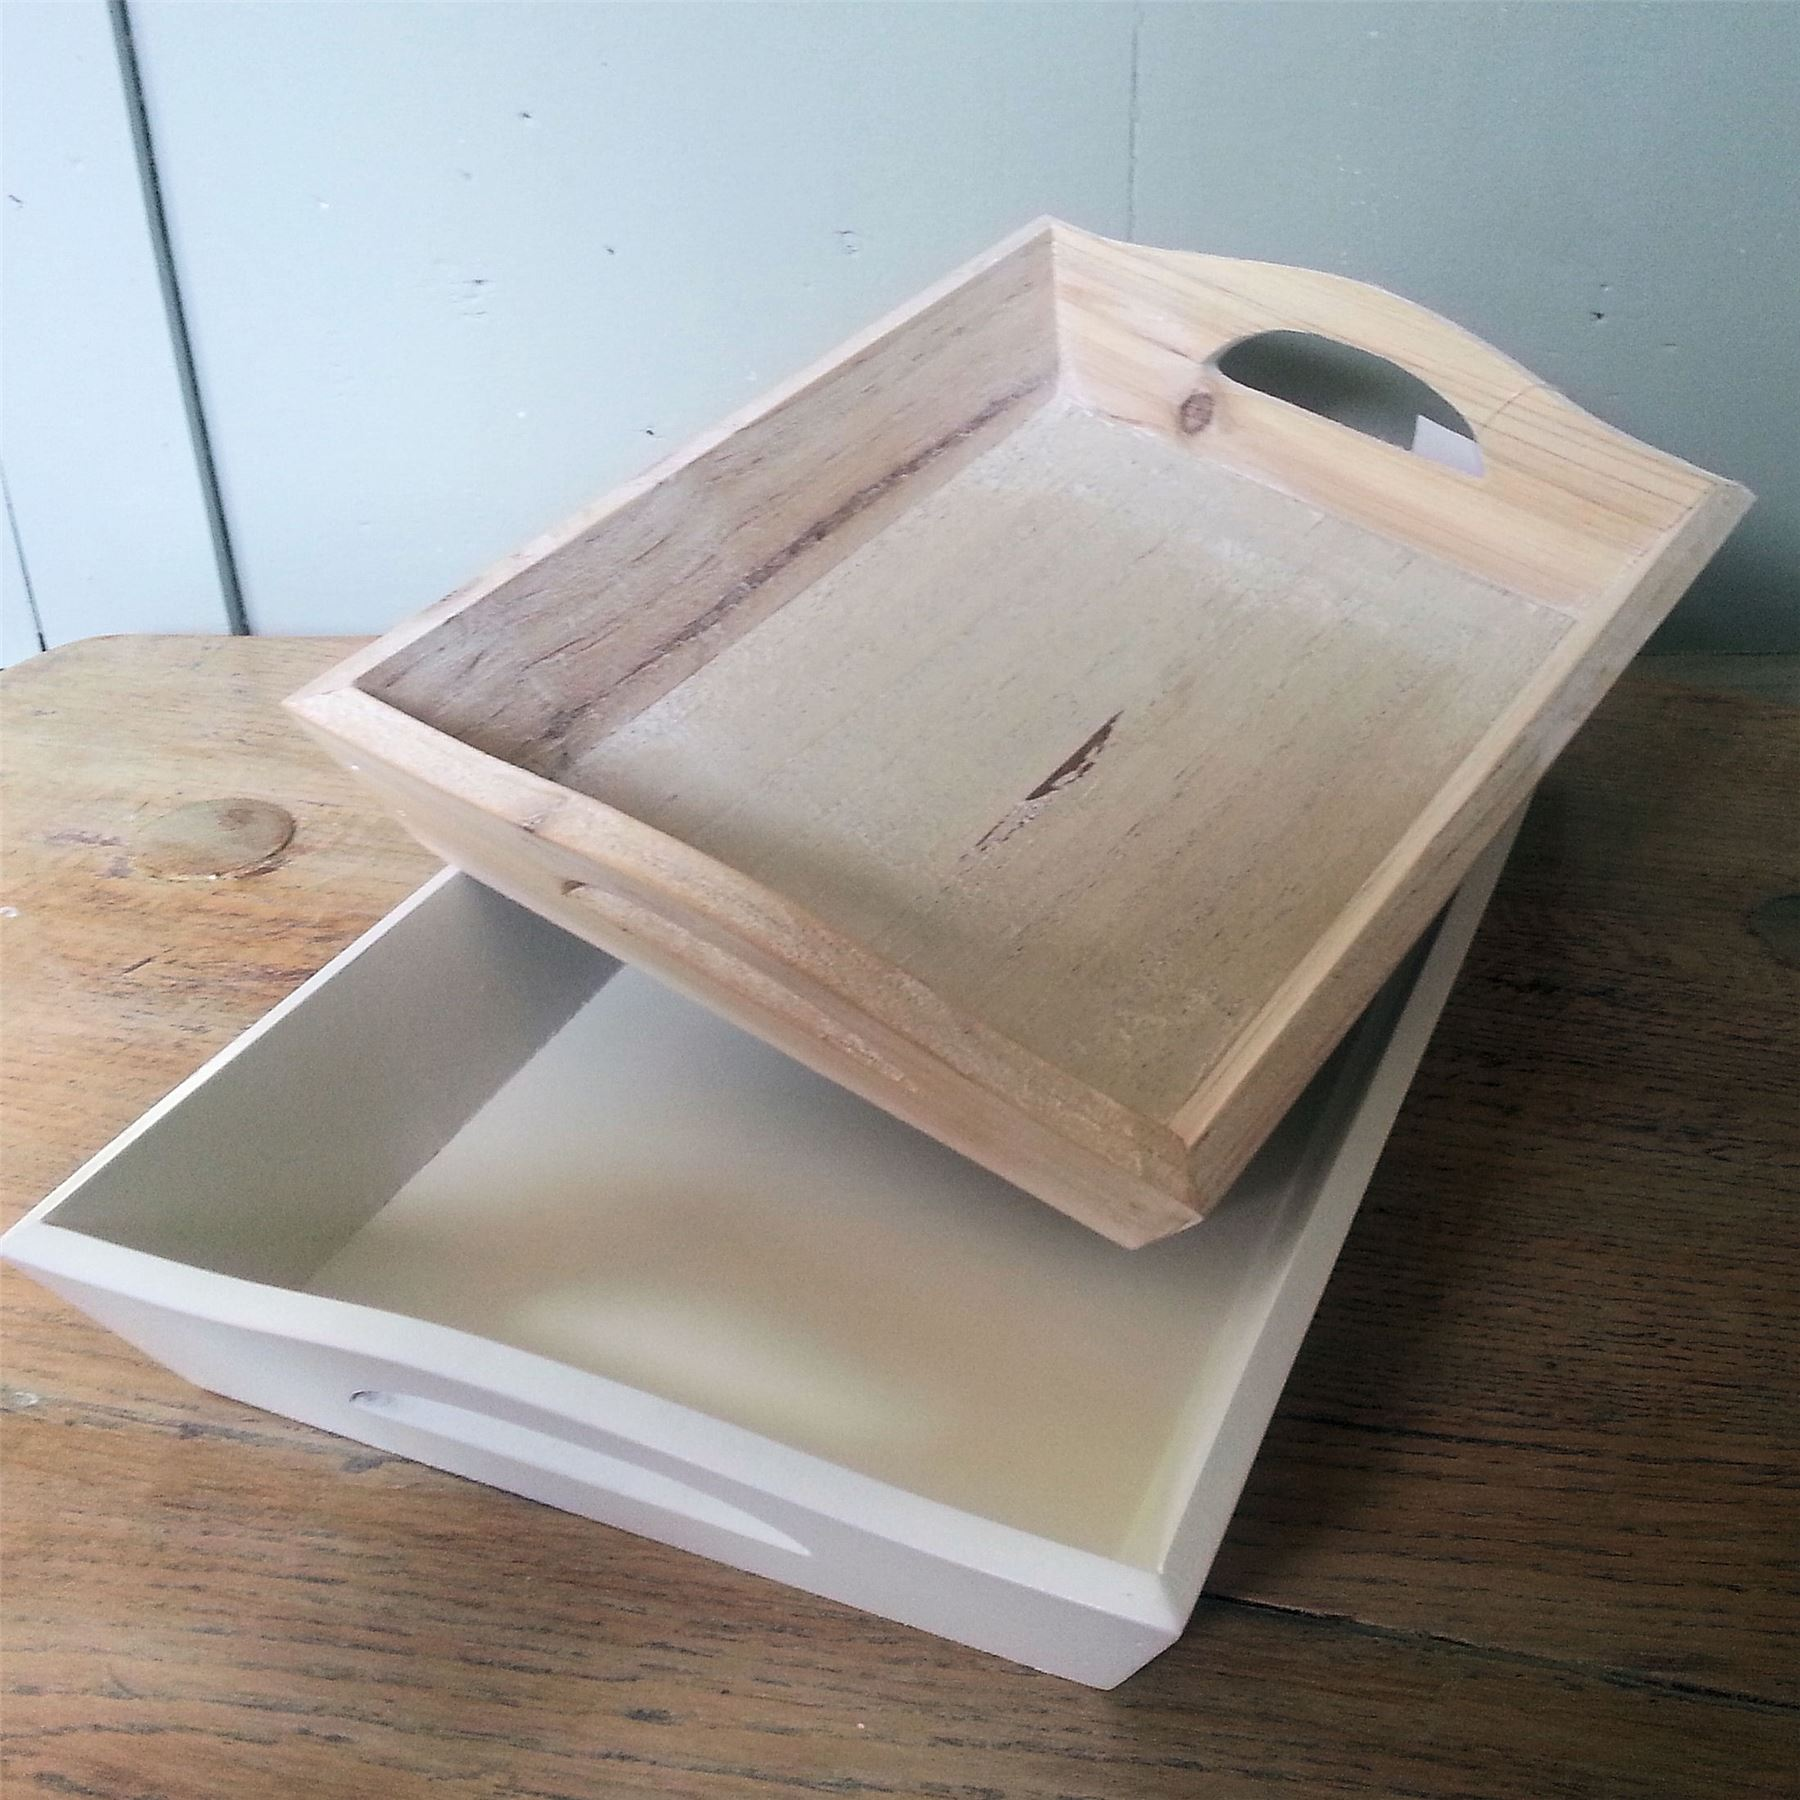 LITTLE-WOODEN-TRAY-SHABBY-VINTAGE-CHIC-WHITE-WASH-PAINTED-KITCHEN-HOME-DECOR